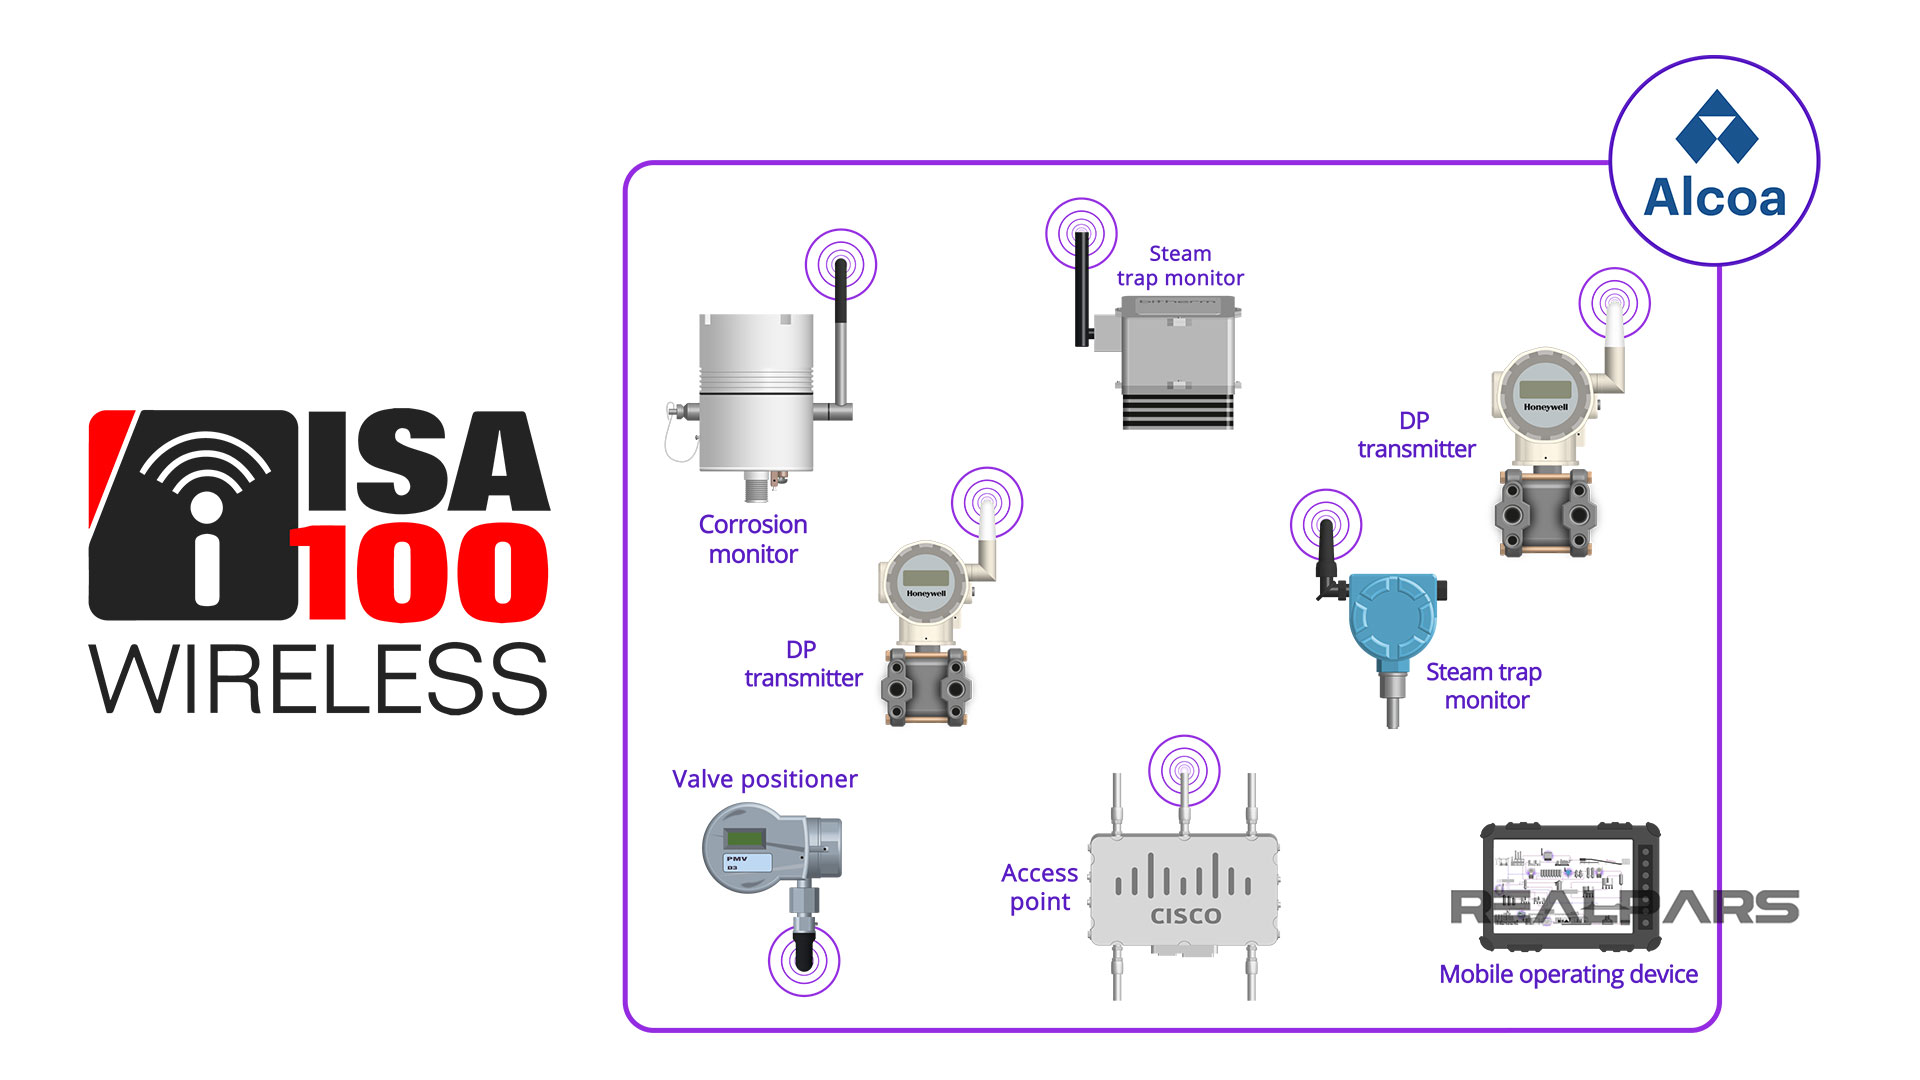 ISA100 Wireless applications for Alcoa operations